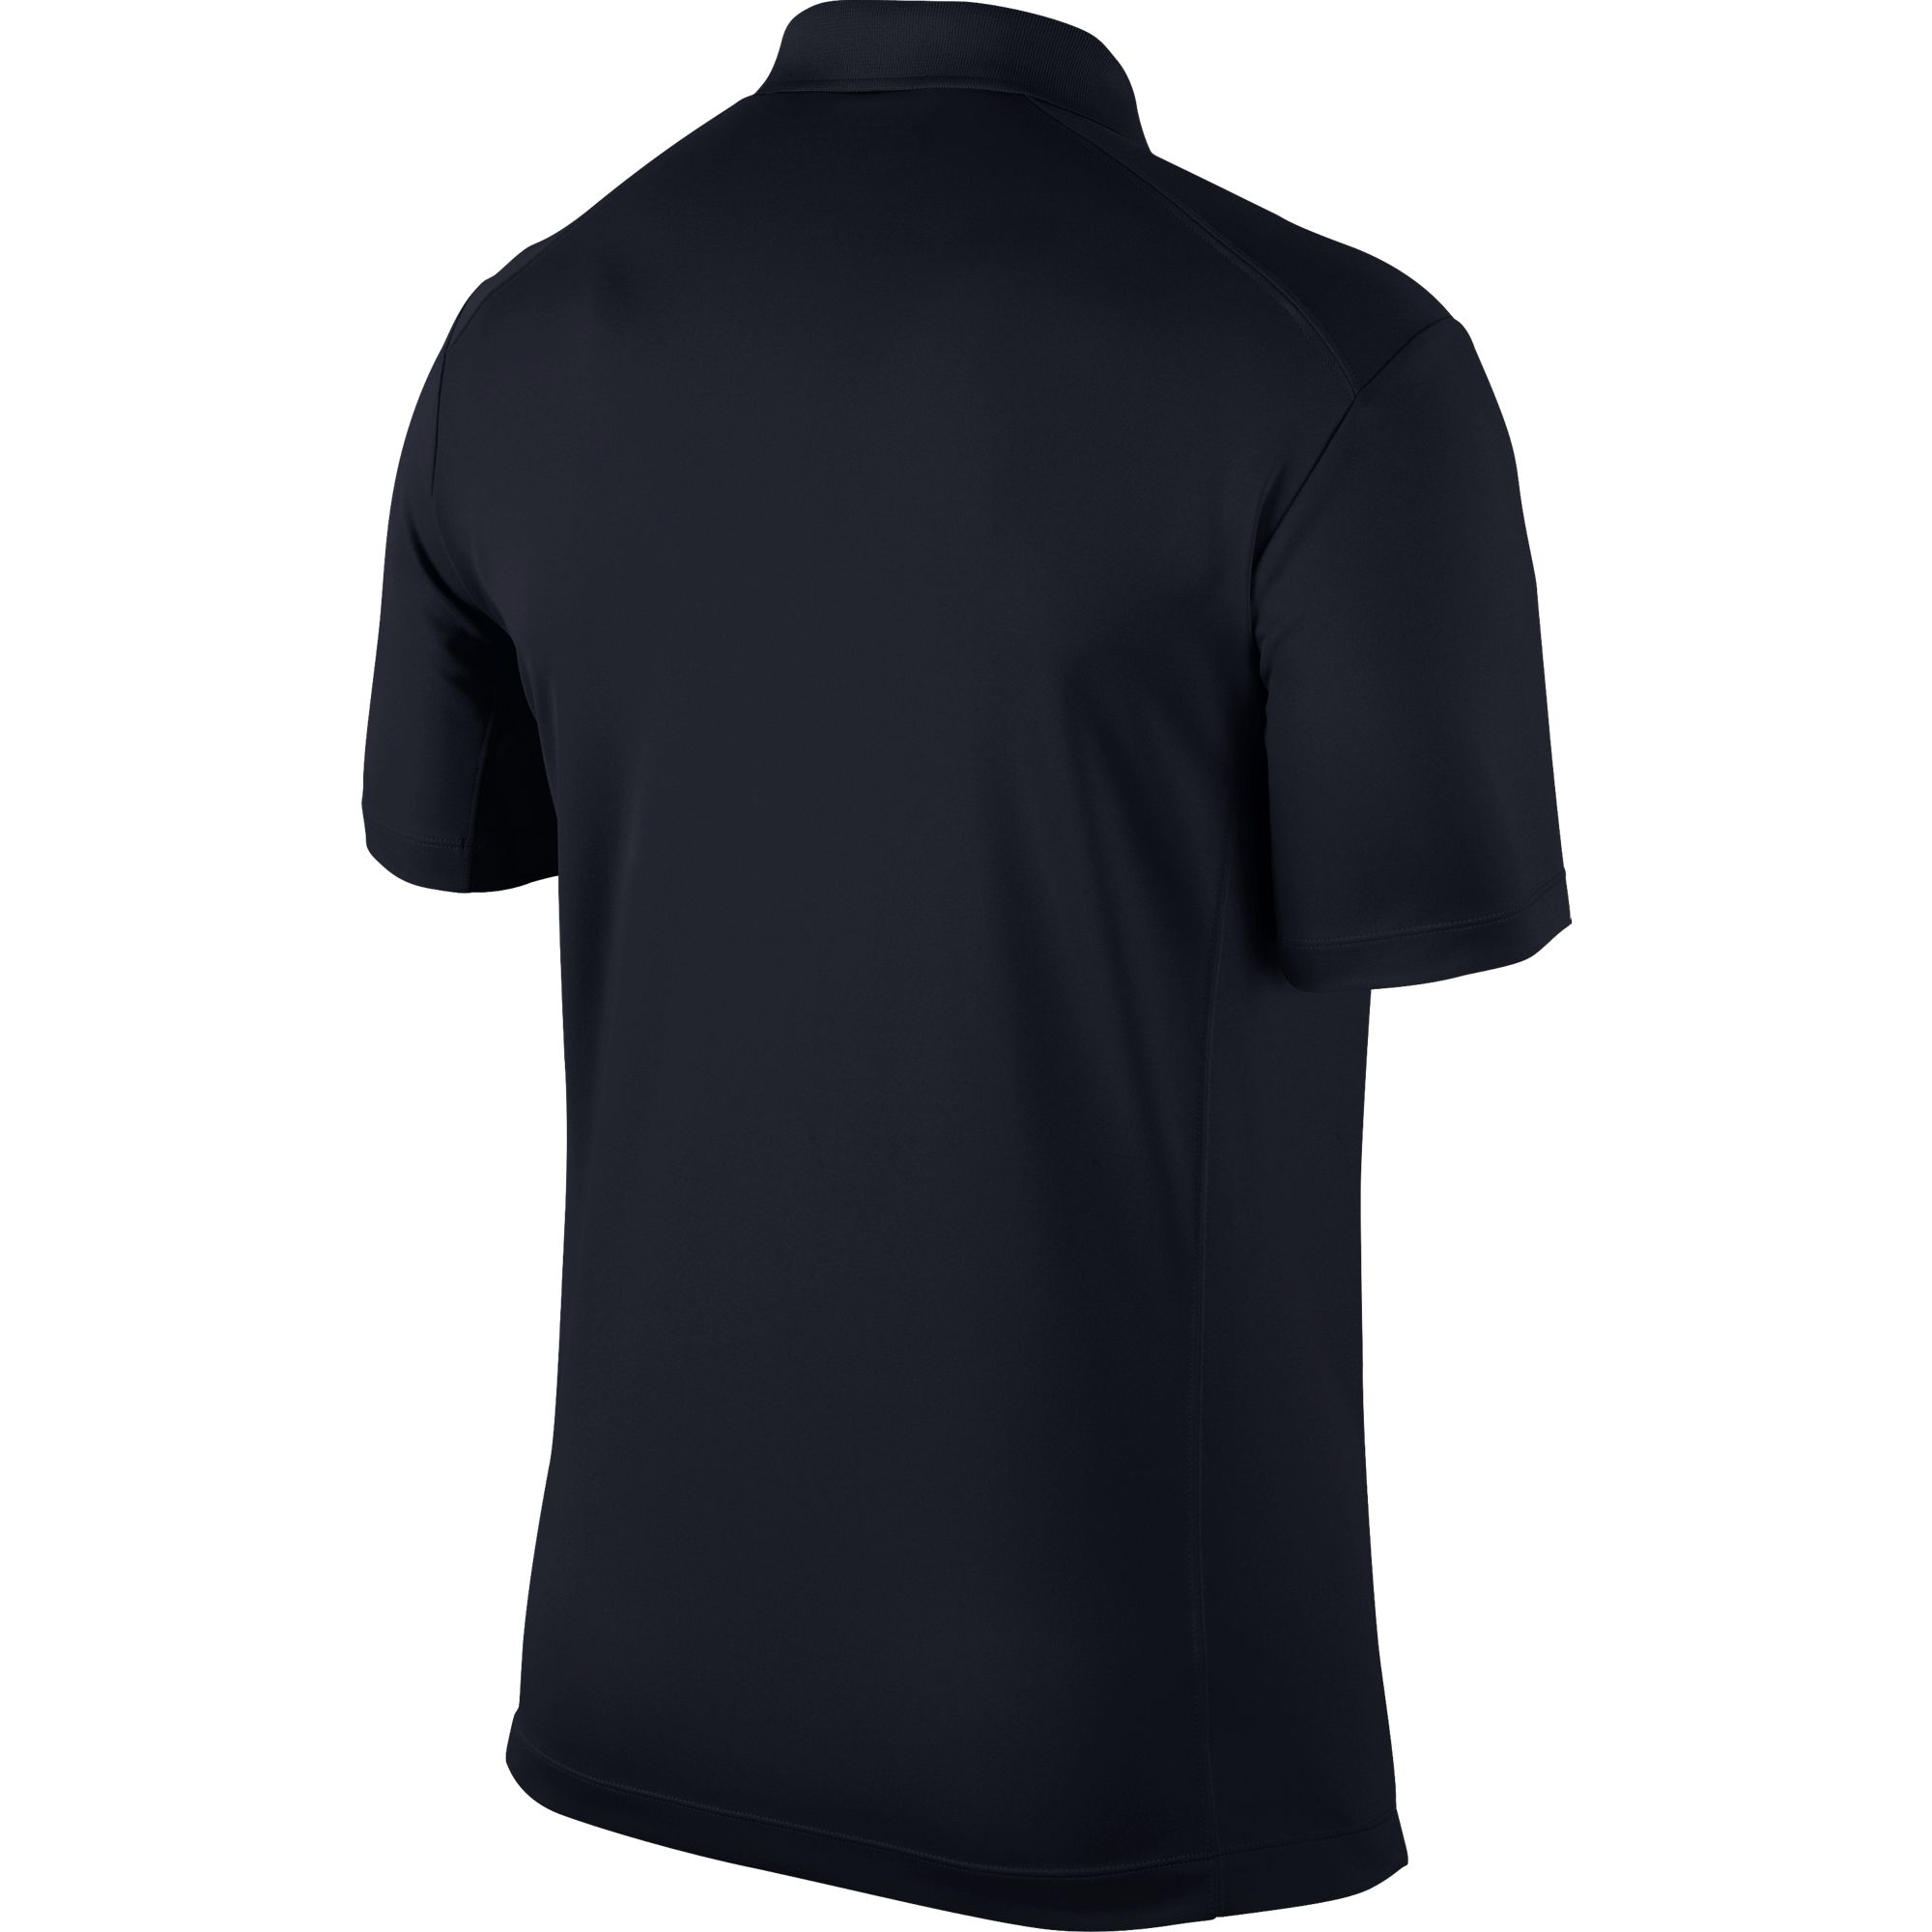 Nike golf 2014 men 039 s dri fit victory polo 509167 brand for Nike dri fit victory golf shirts